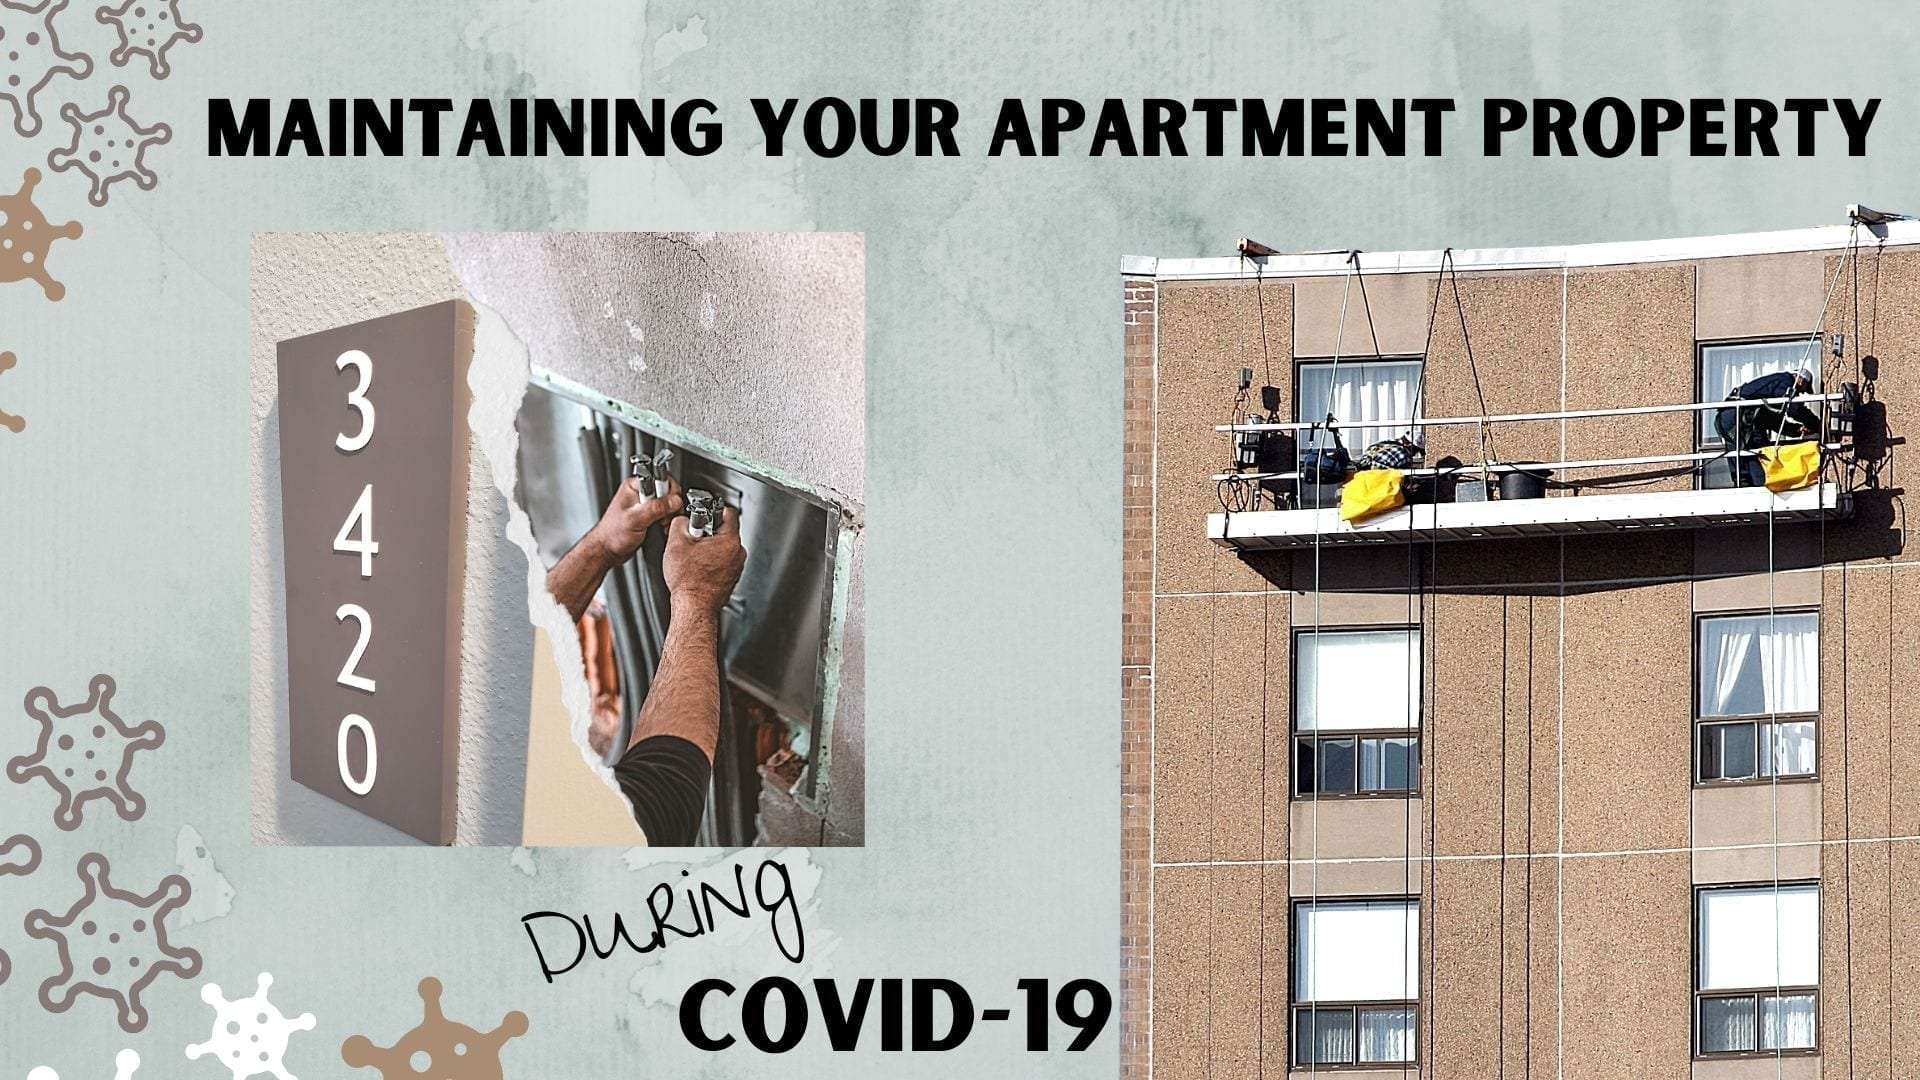 Maintaining your apartment property during covid-19